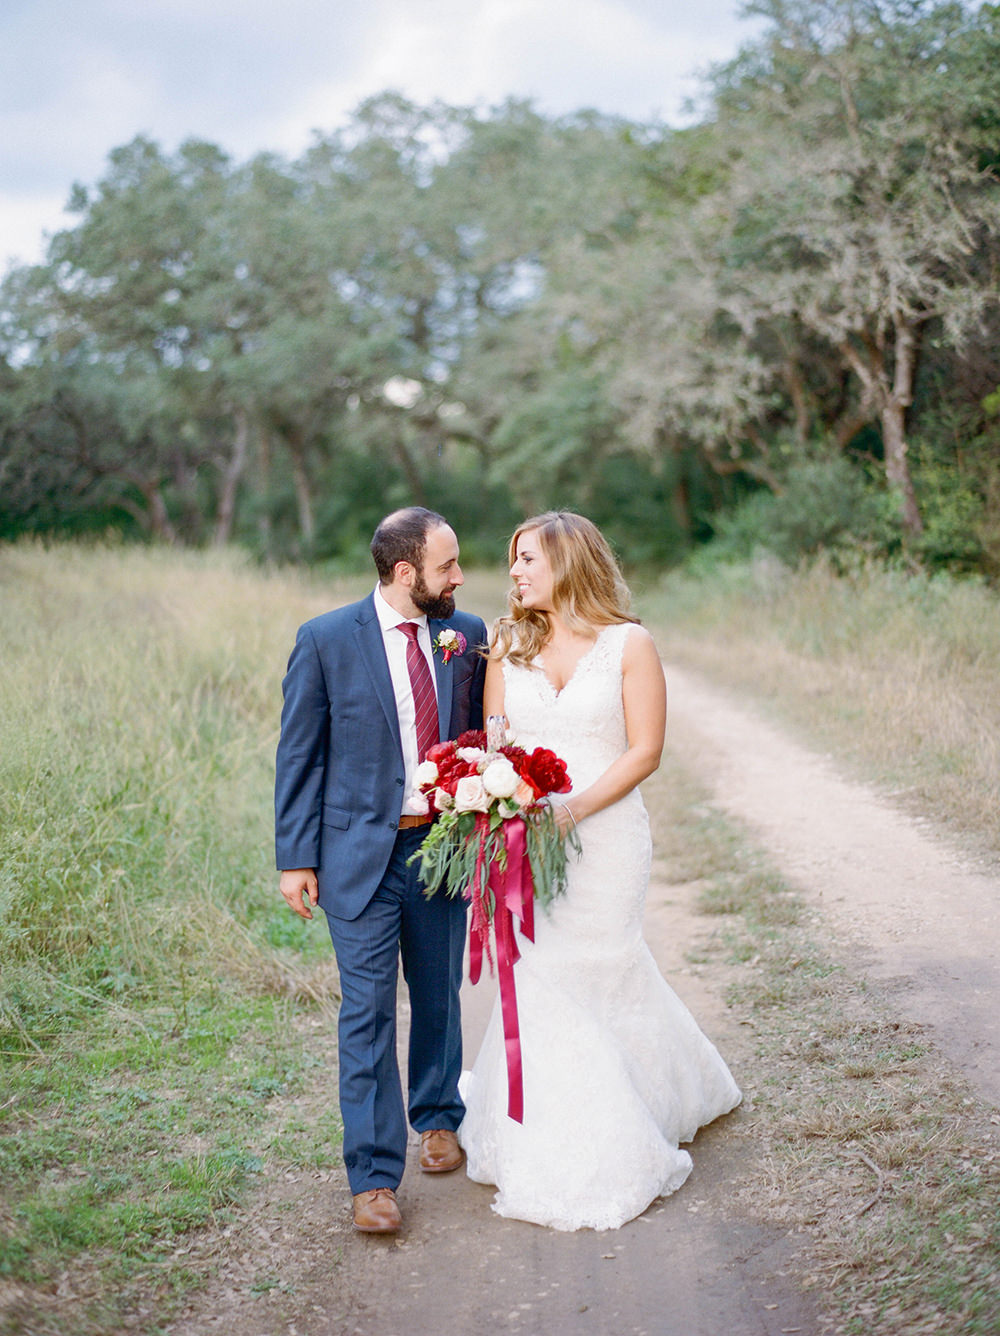 Hill Country Garden Wedding - photo by Honey Gem Creative https://ruffledblog.com/hill-country-garden-wedding